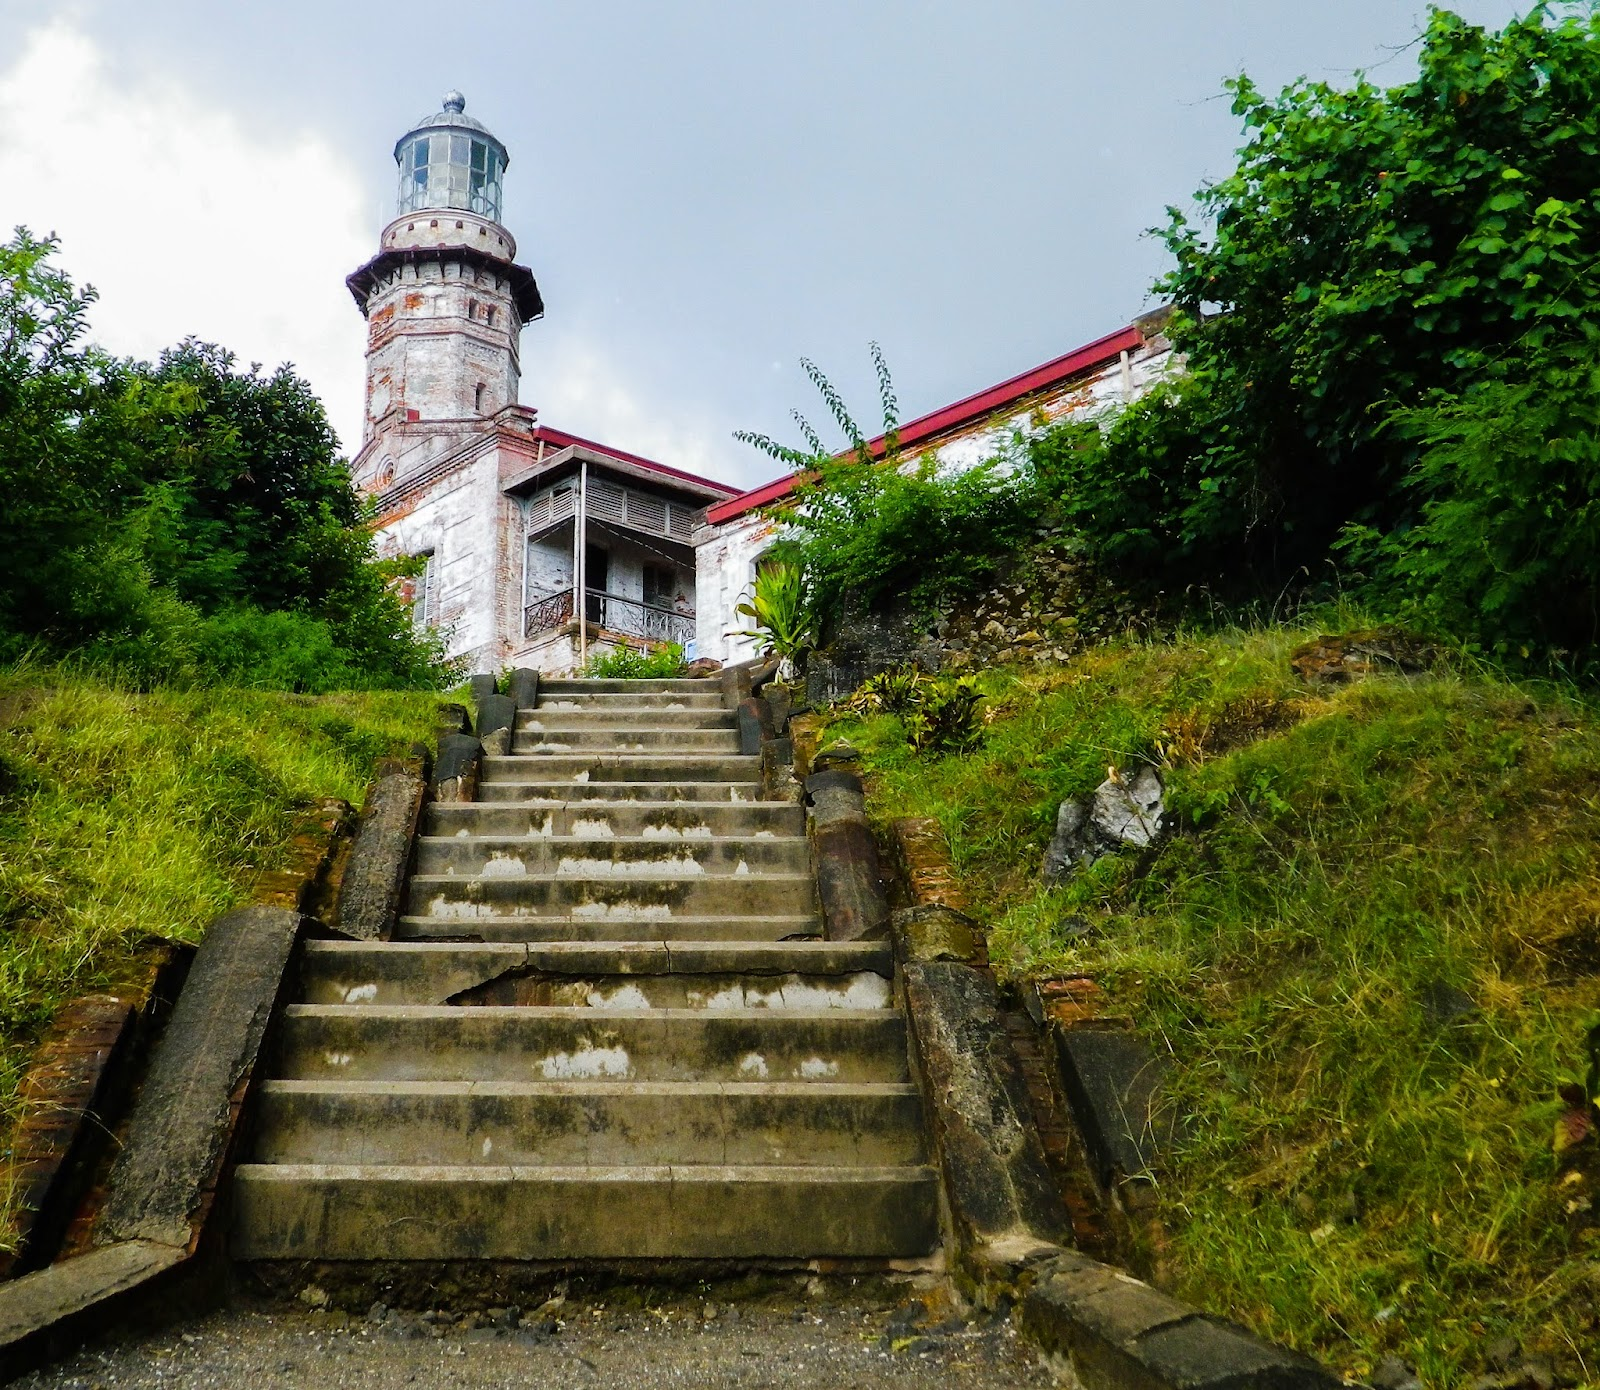 cape bojeador lighthouse principles of tourism Fly to laoag: 10 must do's in ilocos norte a source of sustainable tourism in the province • cape bojeador lighthouse can either lighthouse is one of few.